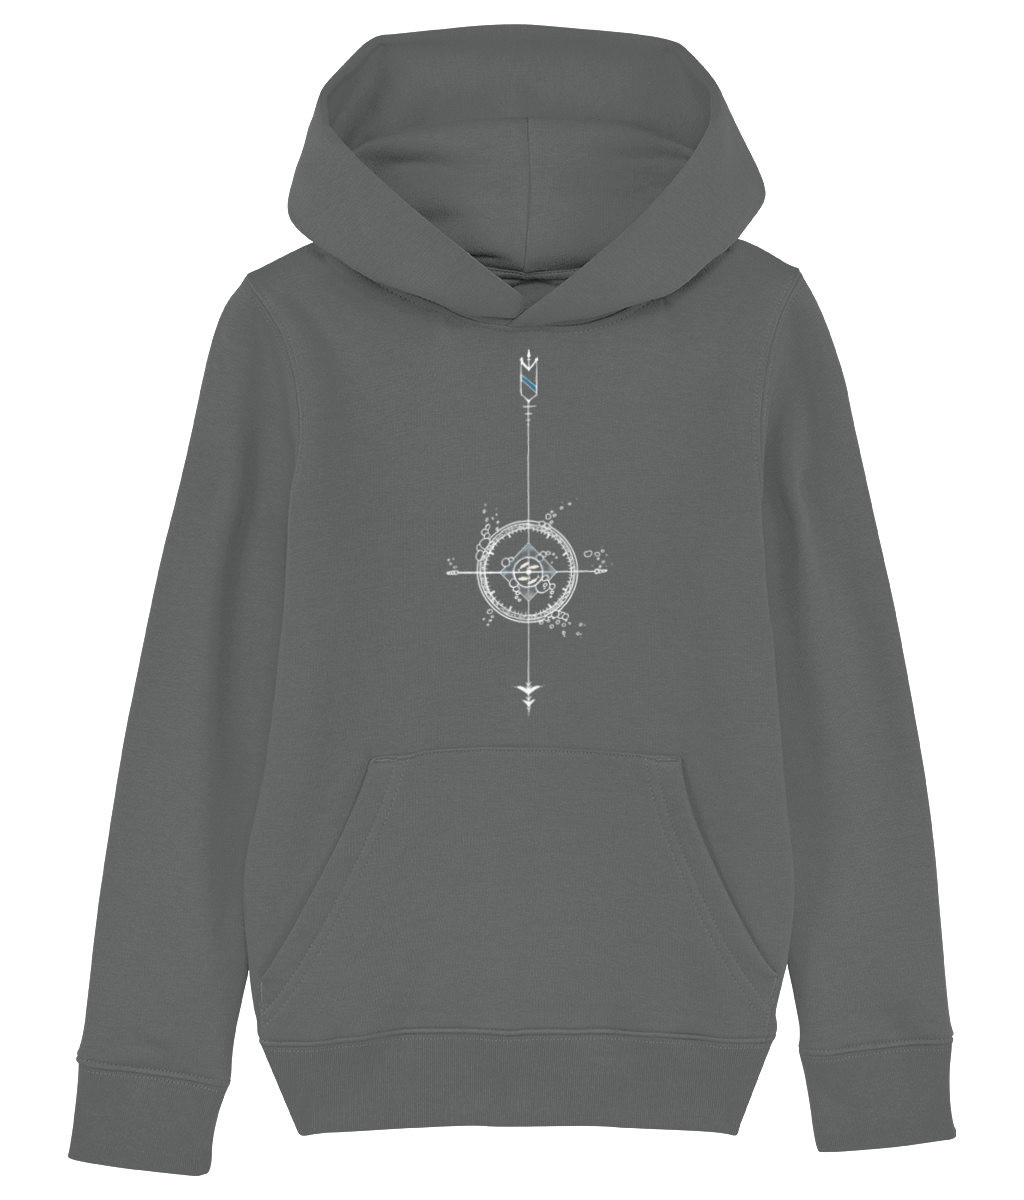 Banshy-grey hoodie - kid- 85% Organic ring-spun combed cotton. 15% recycled polyester- compass-fish-bubbles-arrows-divewear-diver-clothes from the sea